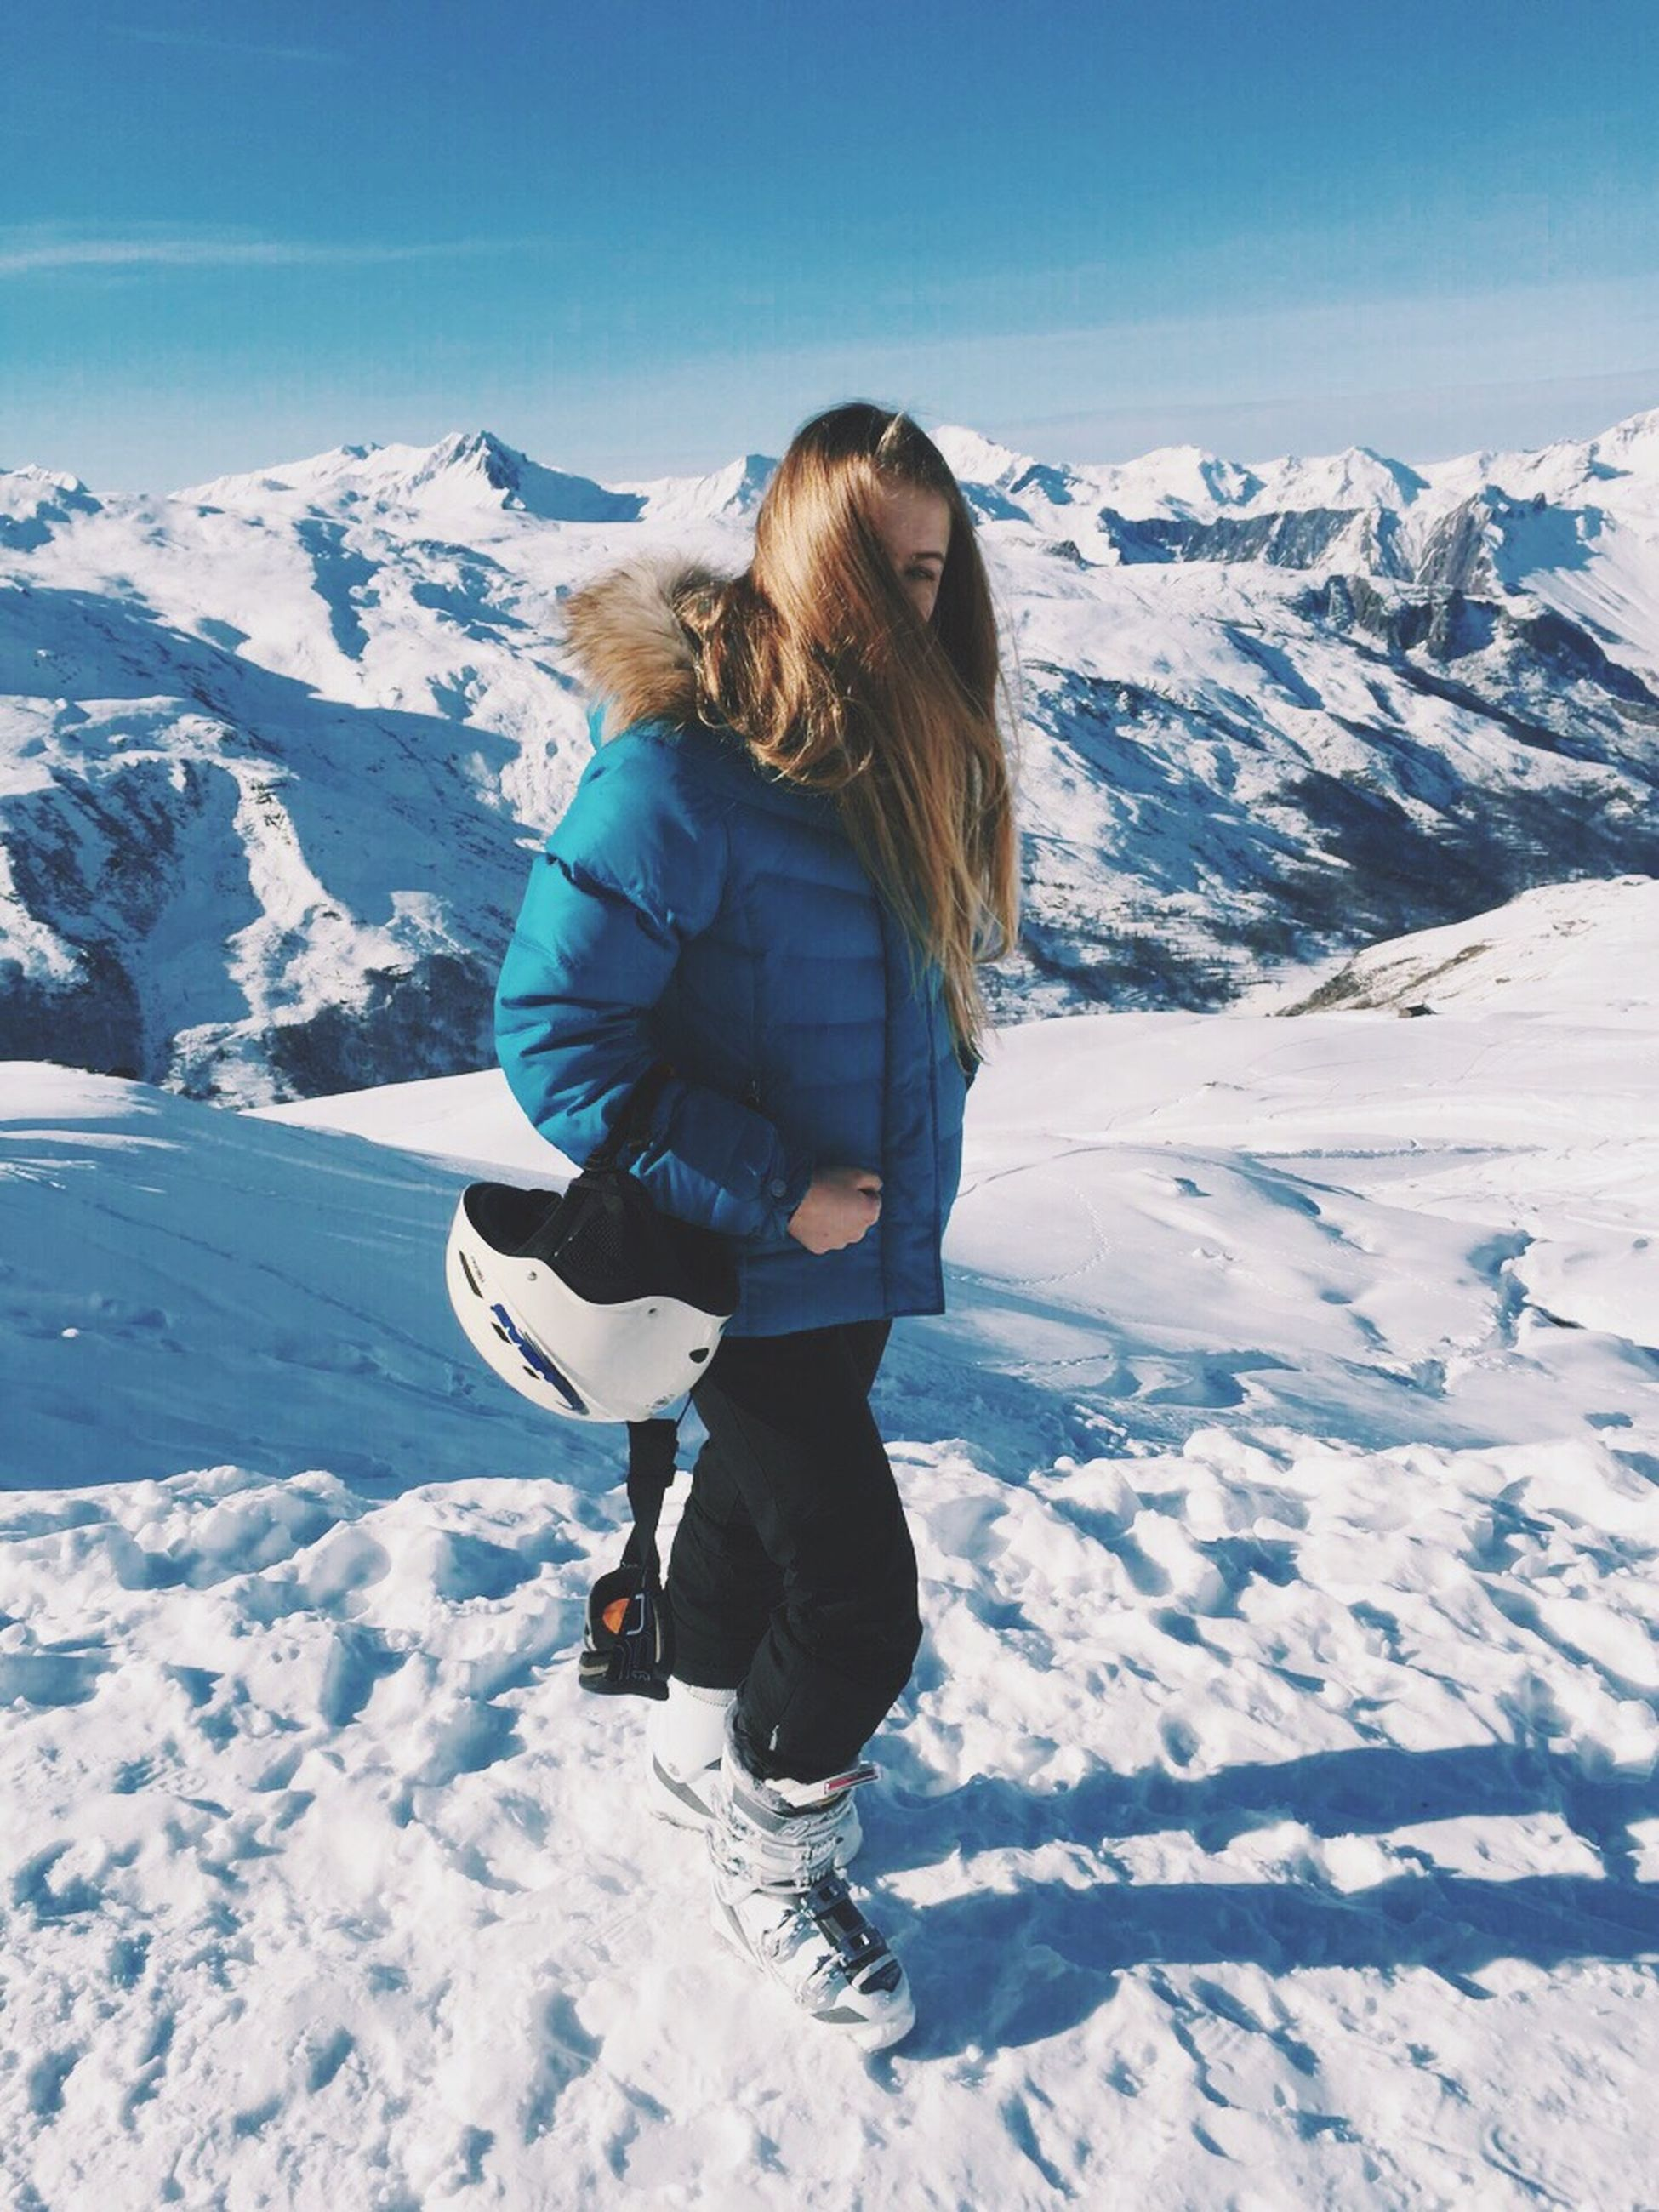 snow, winter, cold temperature, season, mountain, leisure activity, full length, weather, lifestyles, landscape, warm clothing, snowcapped mountain, mountain range, tranquil scene, covering, tranquility, scenics, beauty in nature